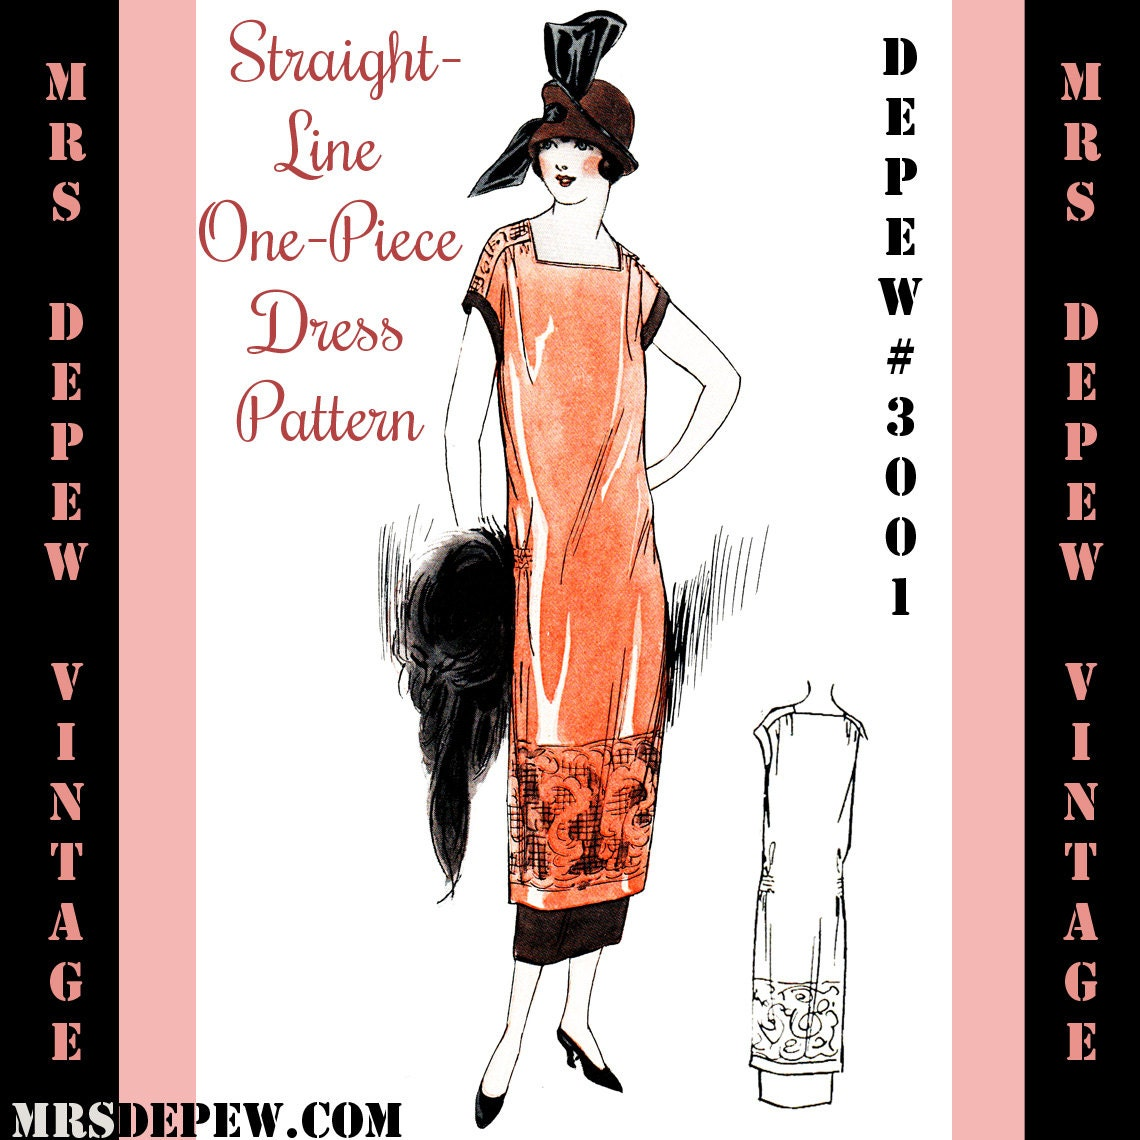 Vintage Sewing Pattern Instructions 1920's Flapper by Mrsdepew